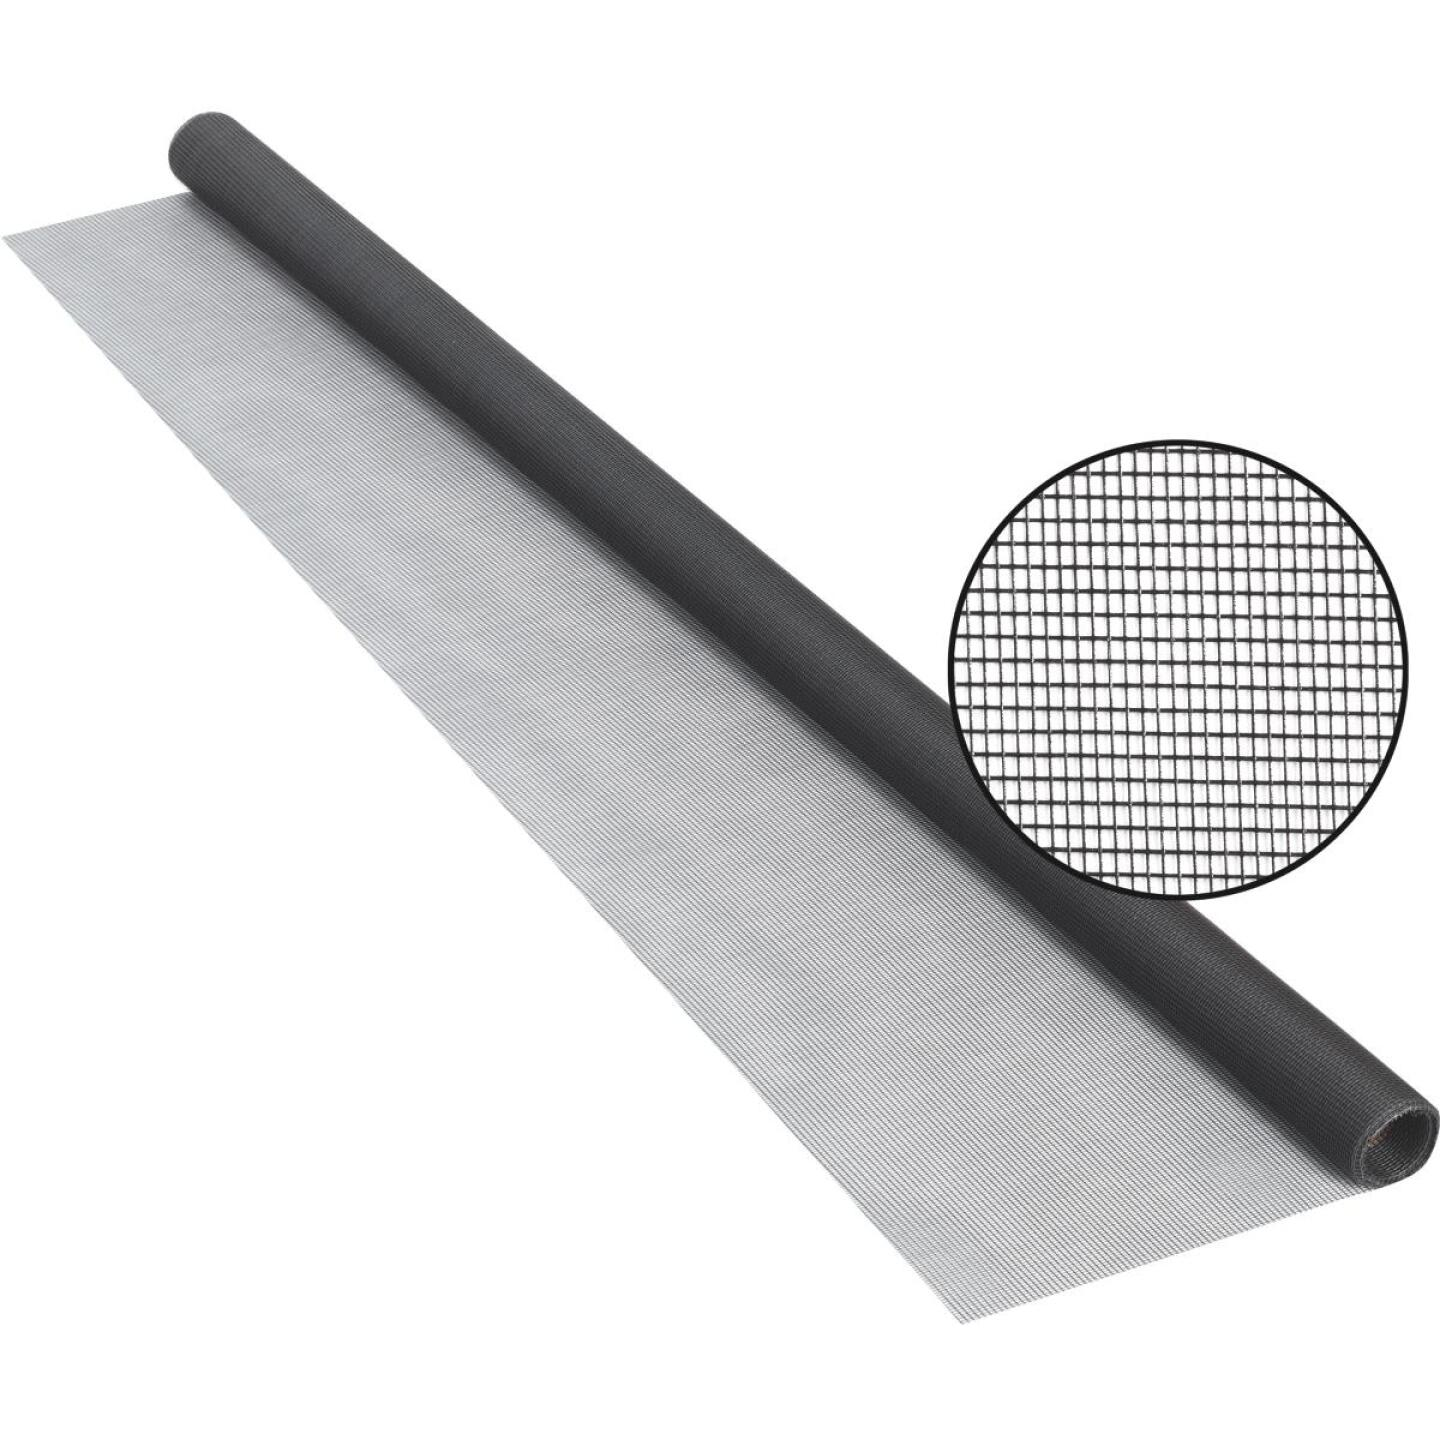 Phifer 24 In. x 84 In. Charcoal Fiberglass Screen Cloth Ready Rolls Image 1